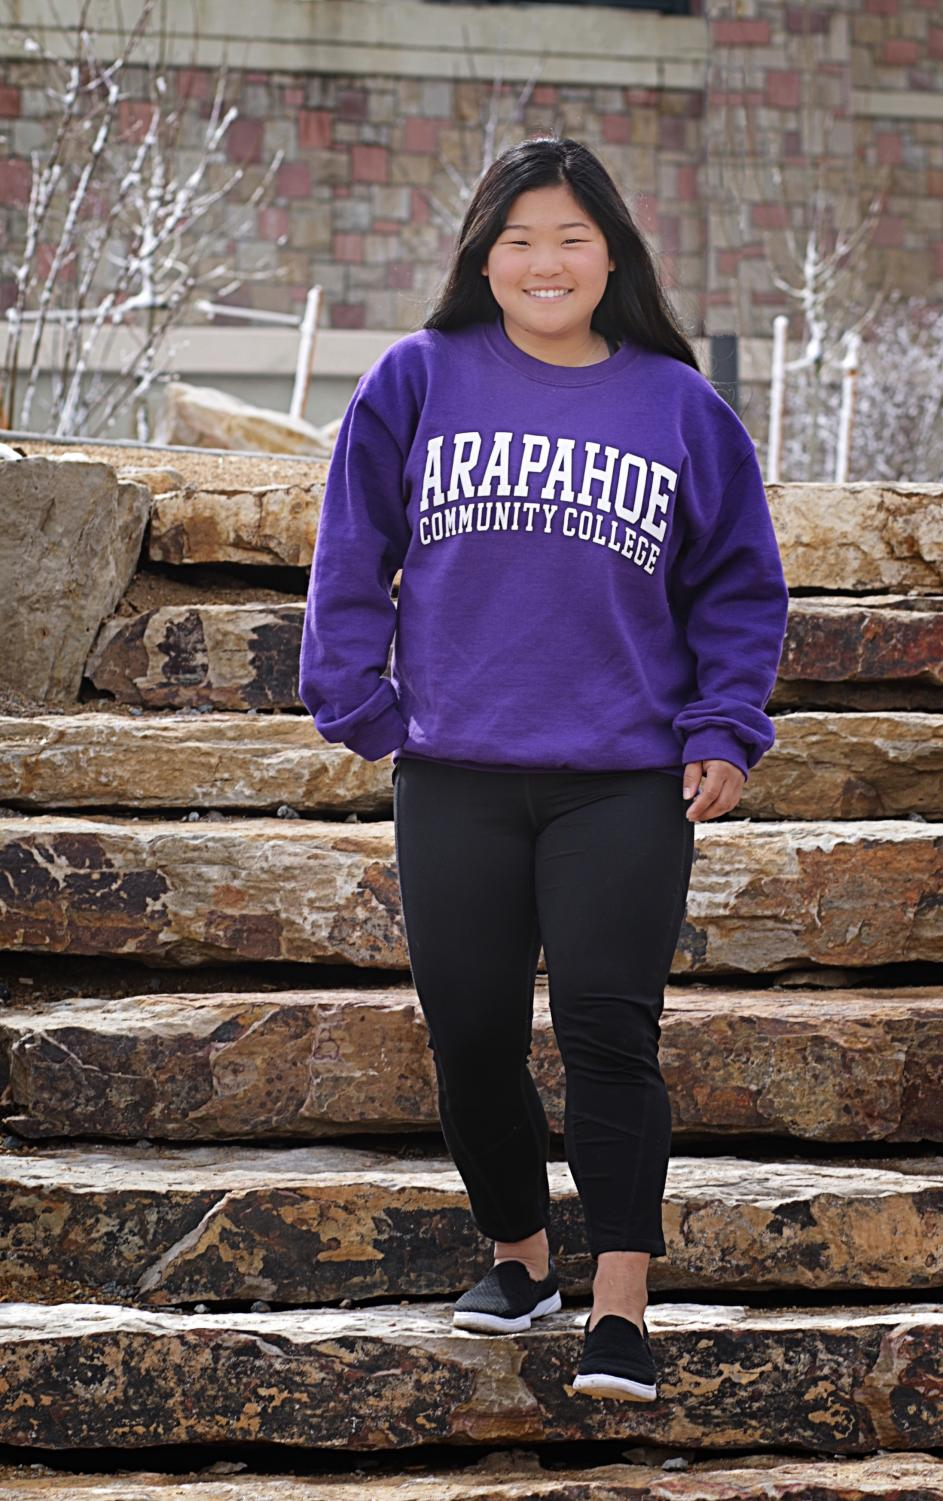 Madison Stone wearing an Arapahoe Community College sweater on April 13, 2018.